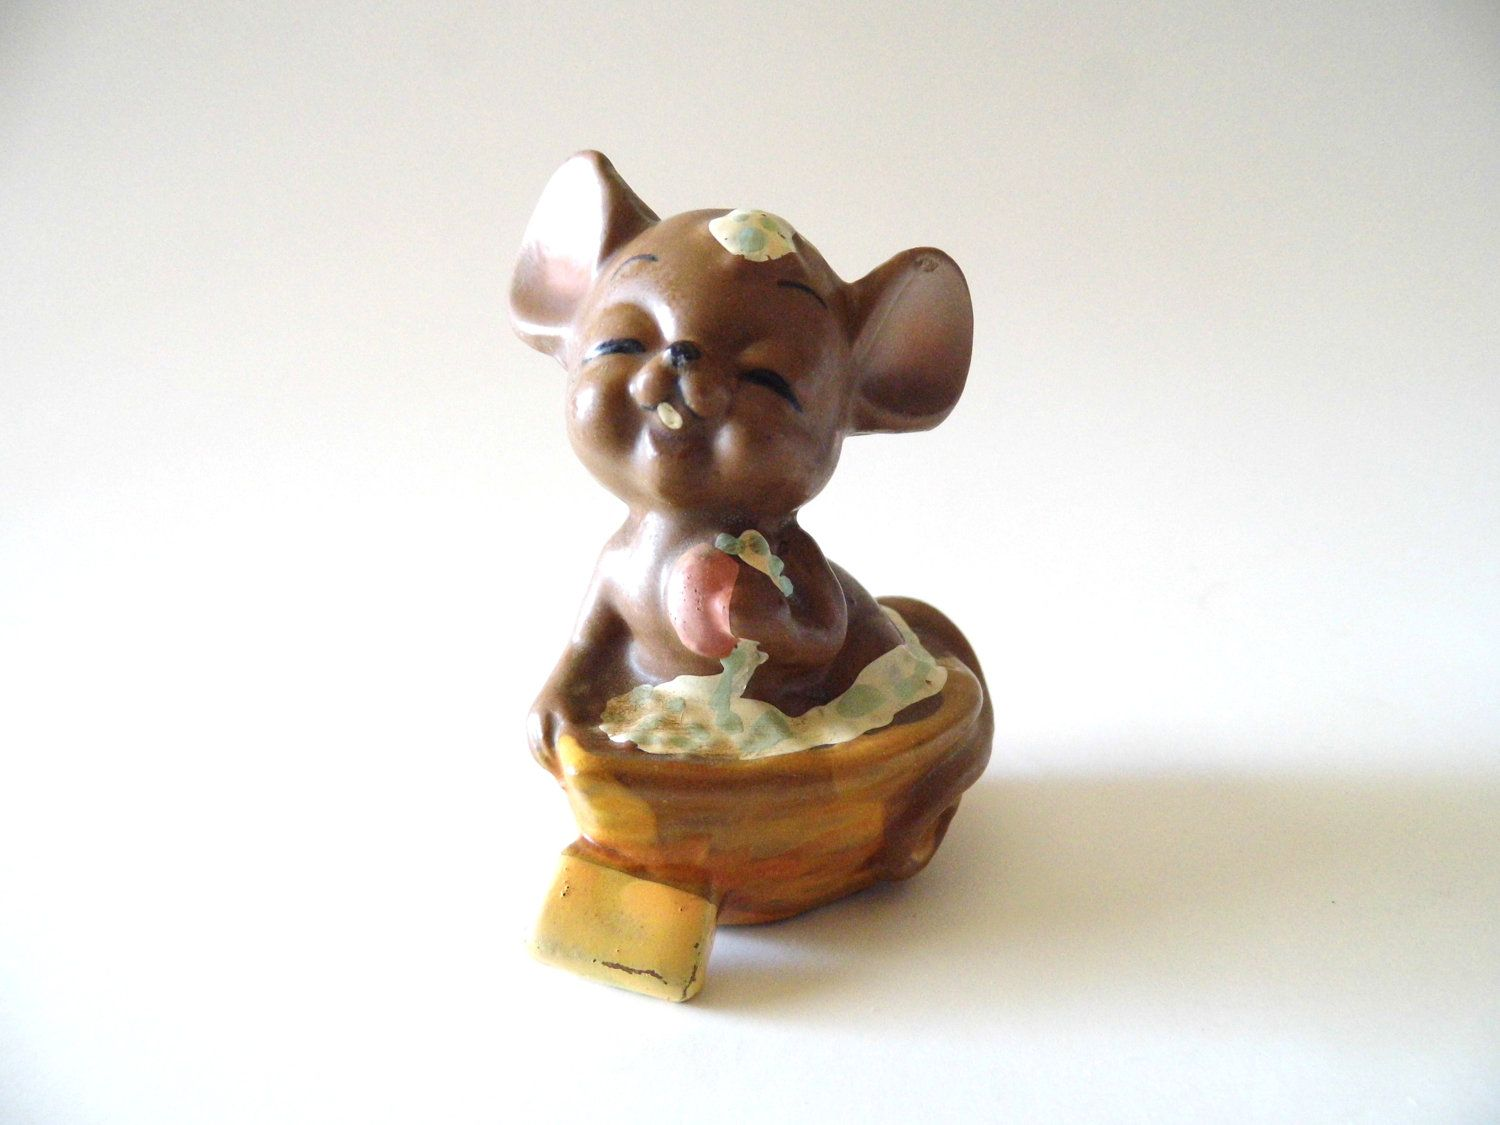 Vintage knick knack josef original mouse figurine in bath for Bathroom knick knacks